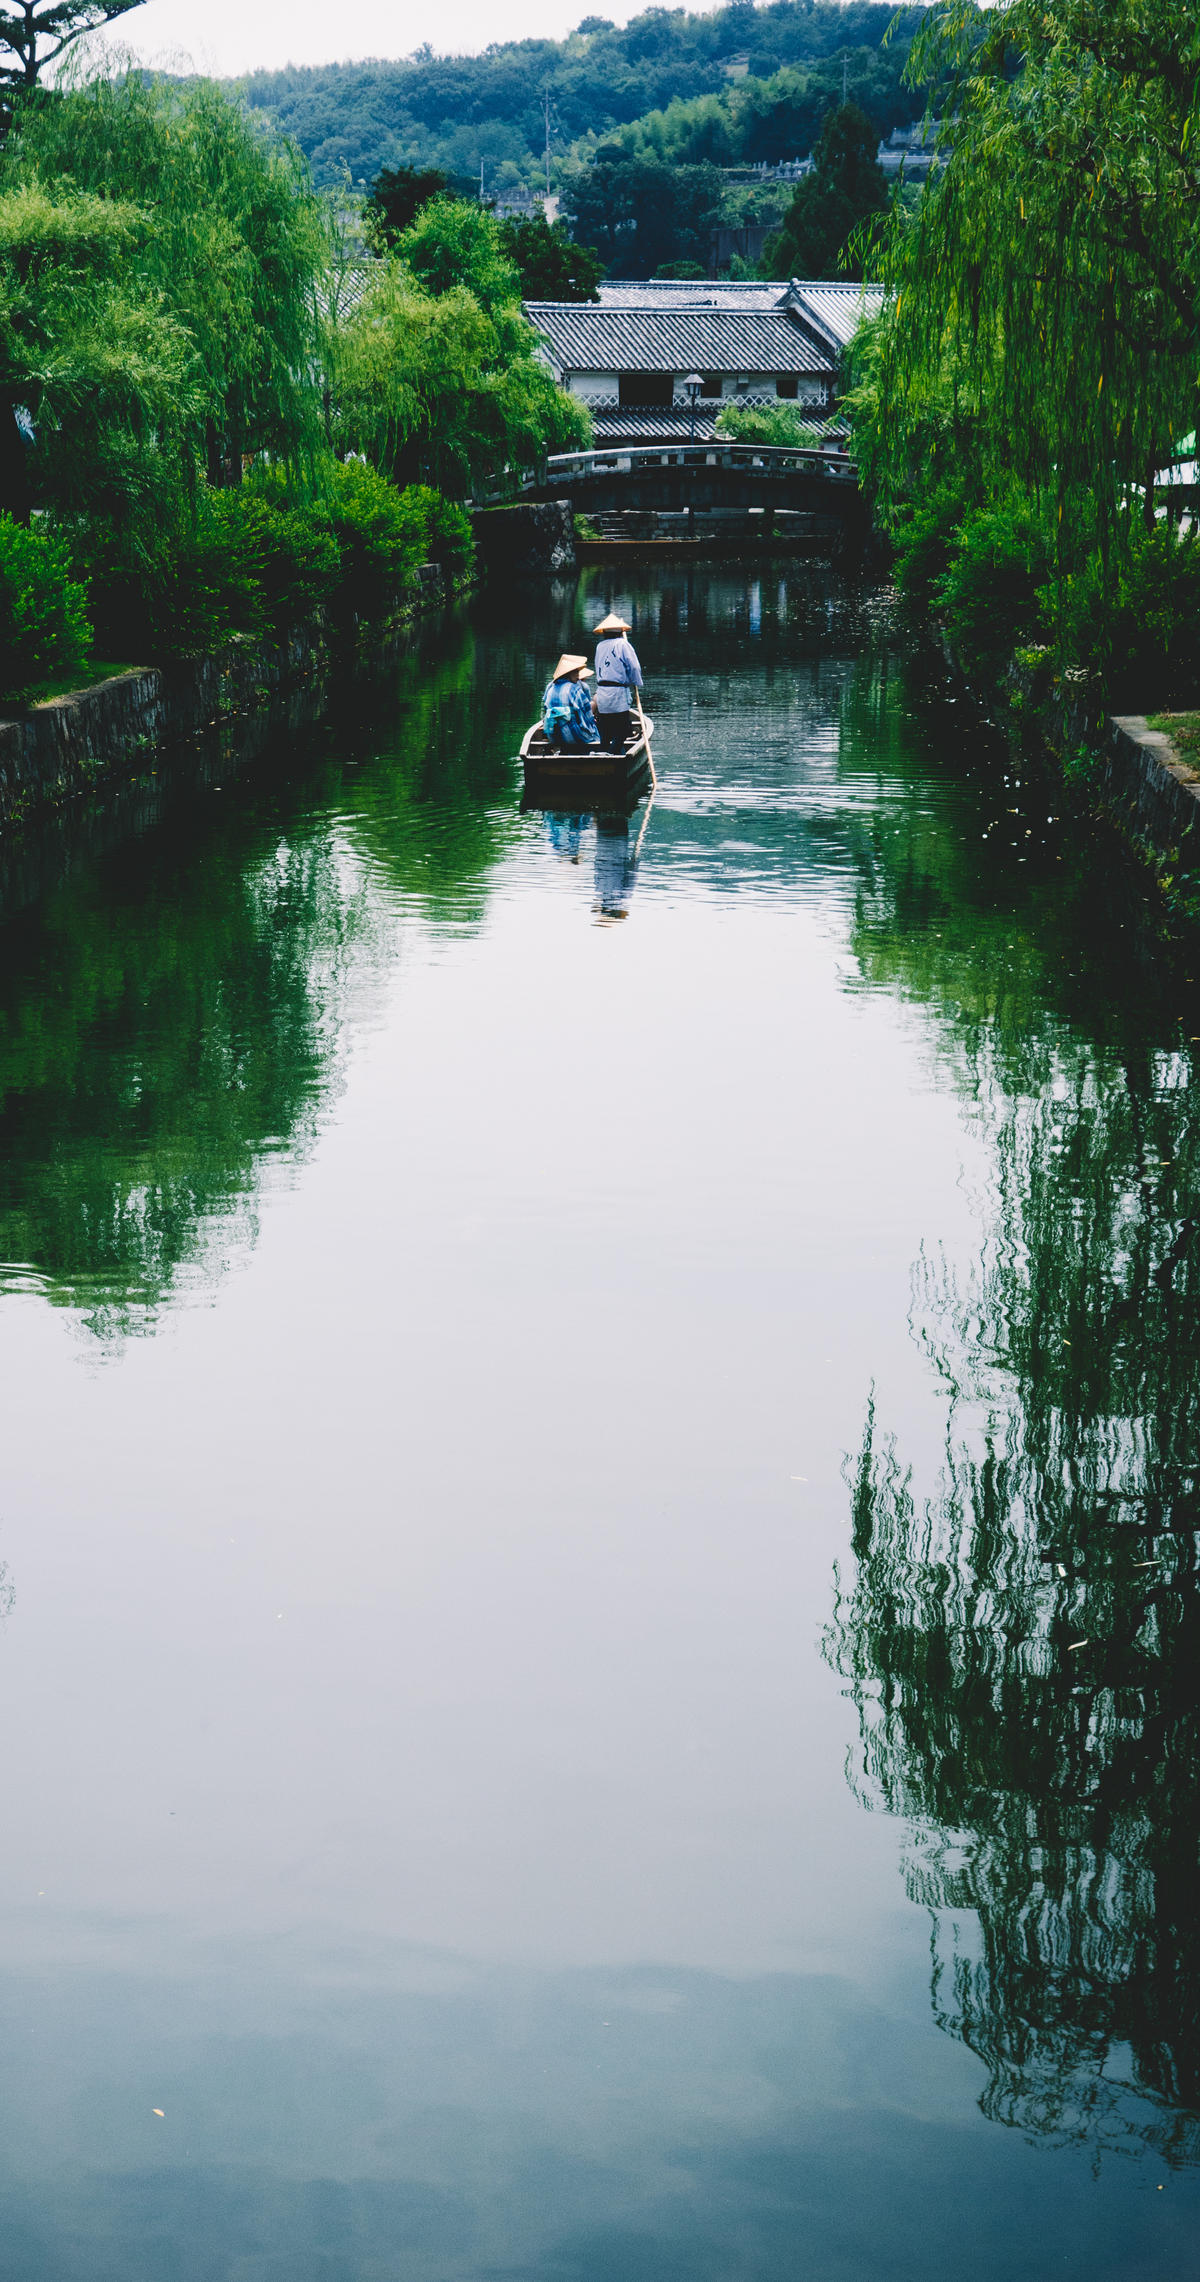 People in a boat on the river